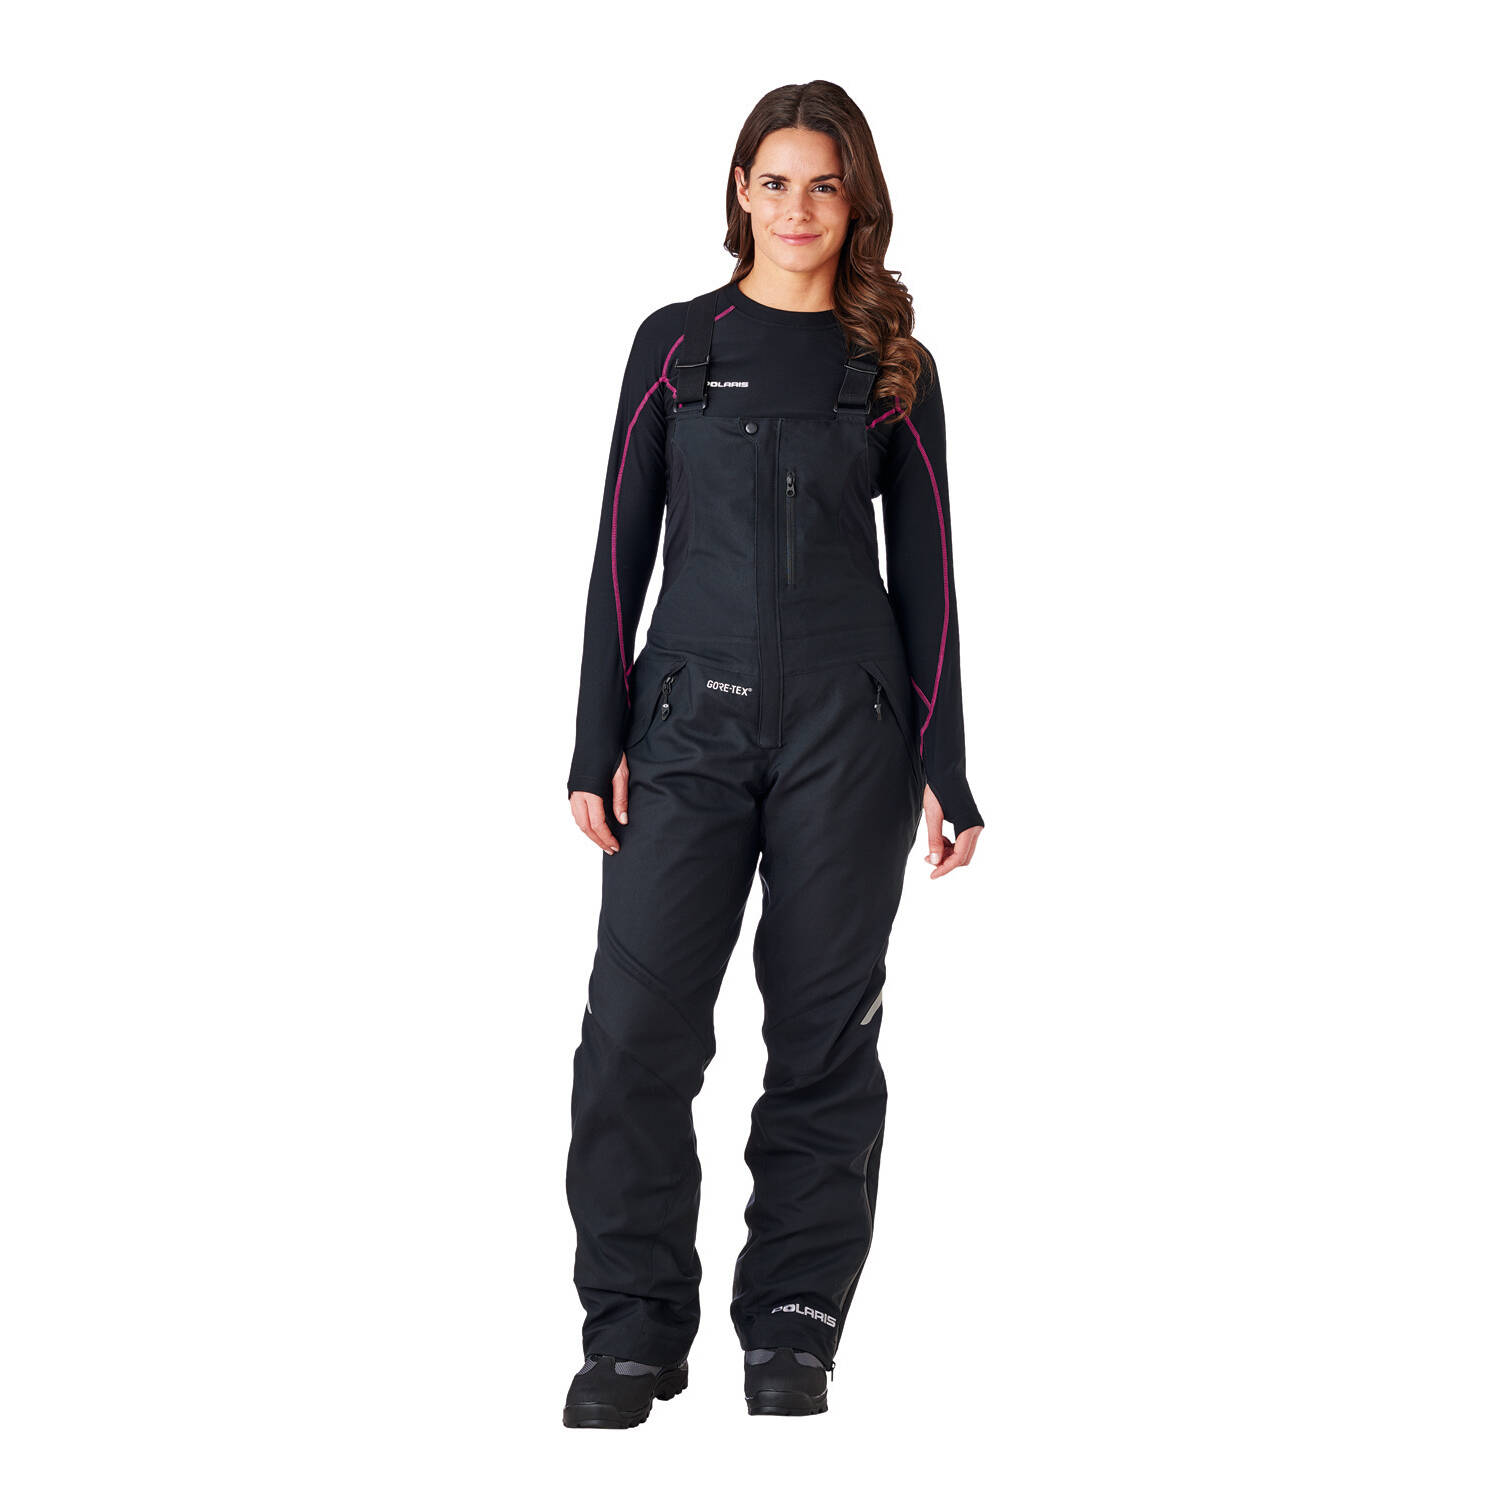 Women's Diamond Bib Snow Pants with GORE-TEX®, Black